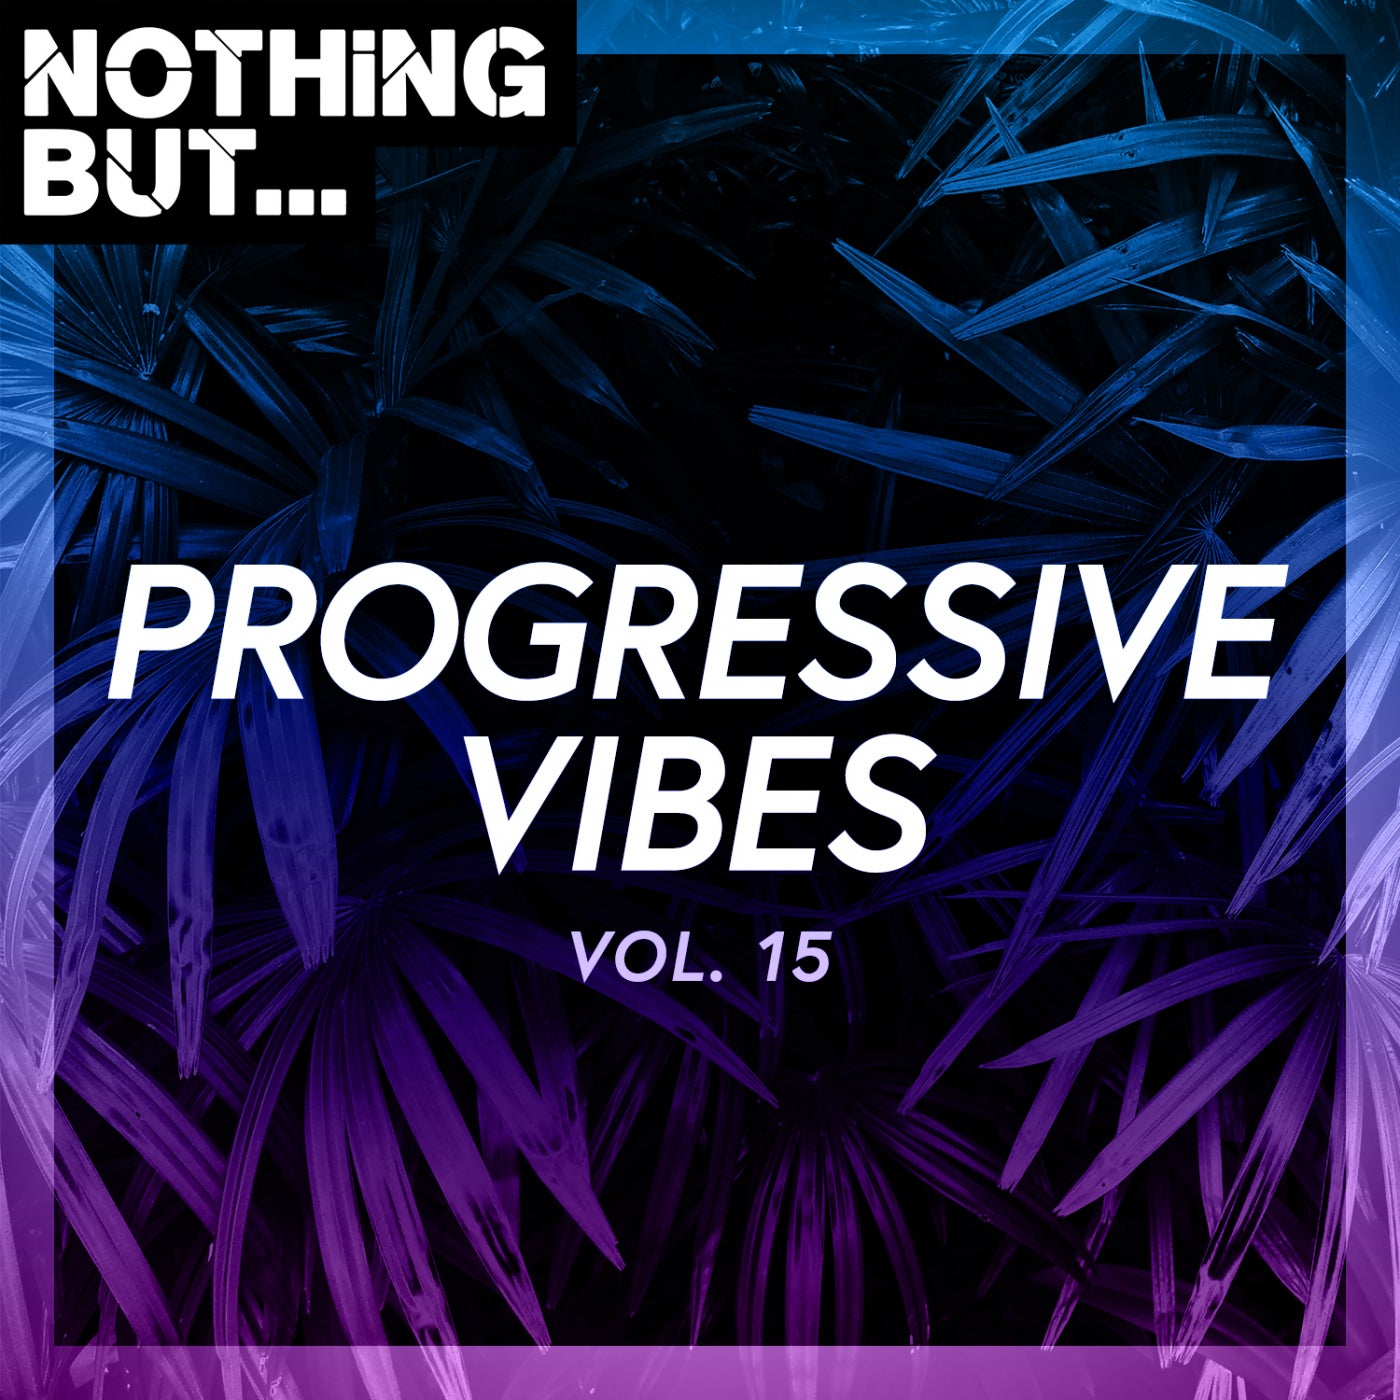 Various Performers - Nothing But Progressive Vibes, Vol. 15 (2021)